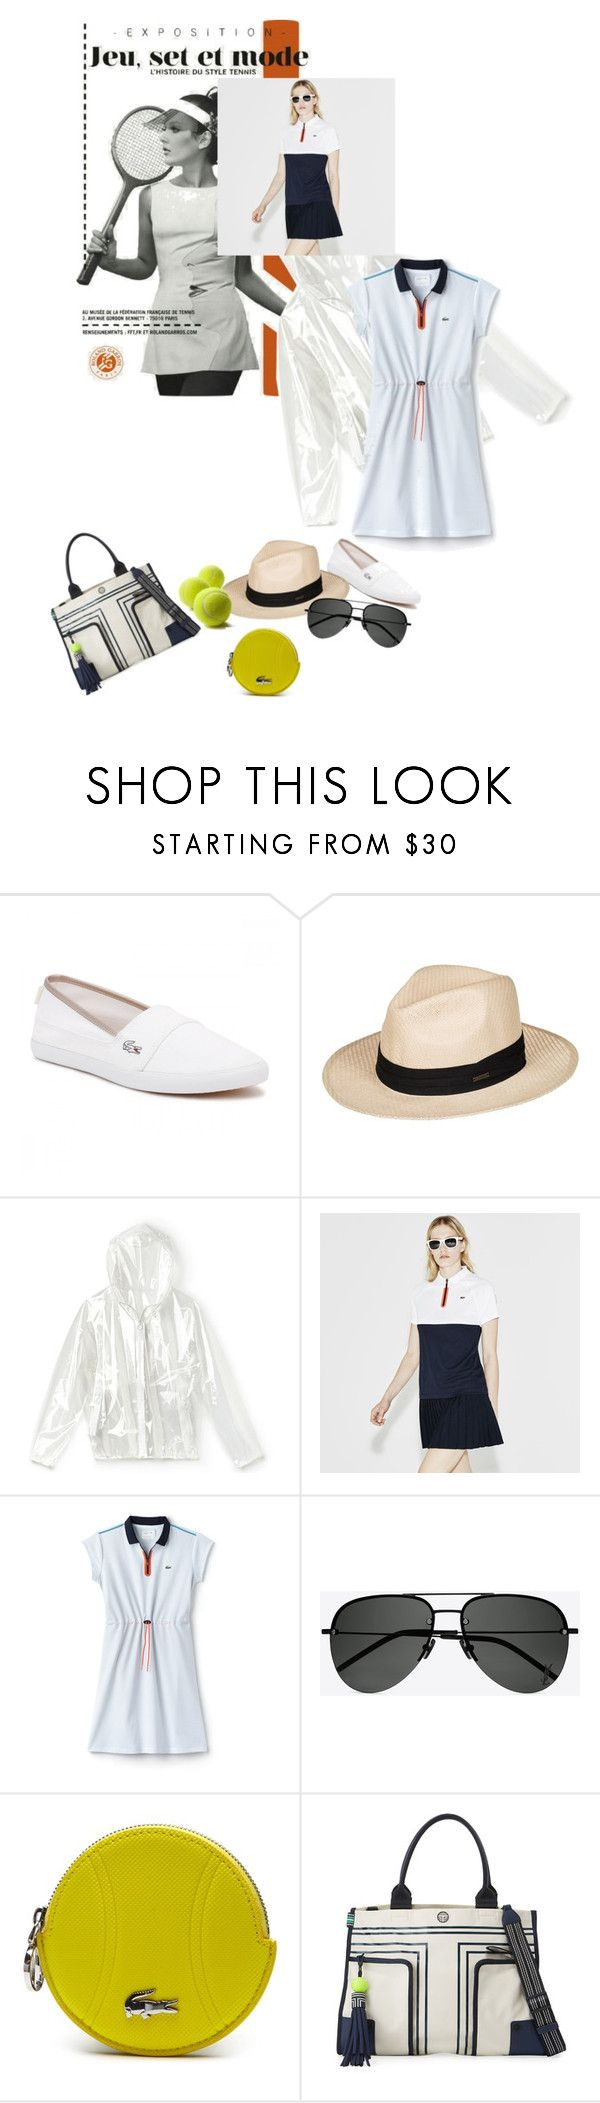 """Roland Garros"" by gabrielleleroy ❤ liked on Polyvore featuring Lacoste, Roxy, Yves Saint Laurent and Tory Sport"